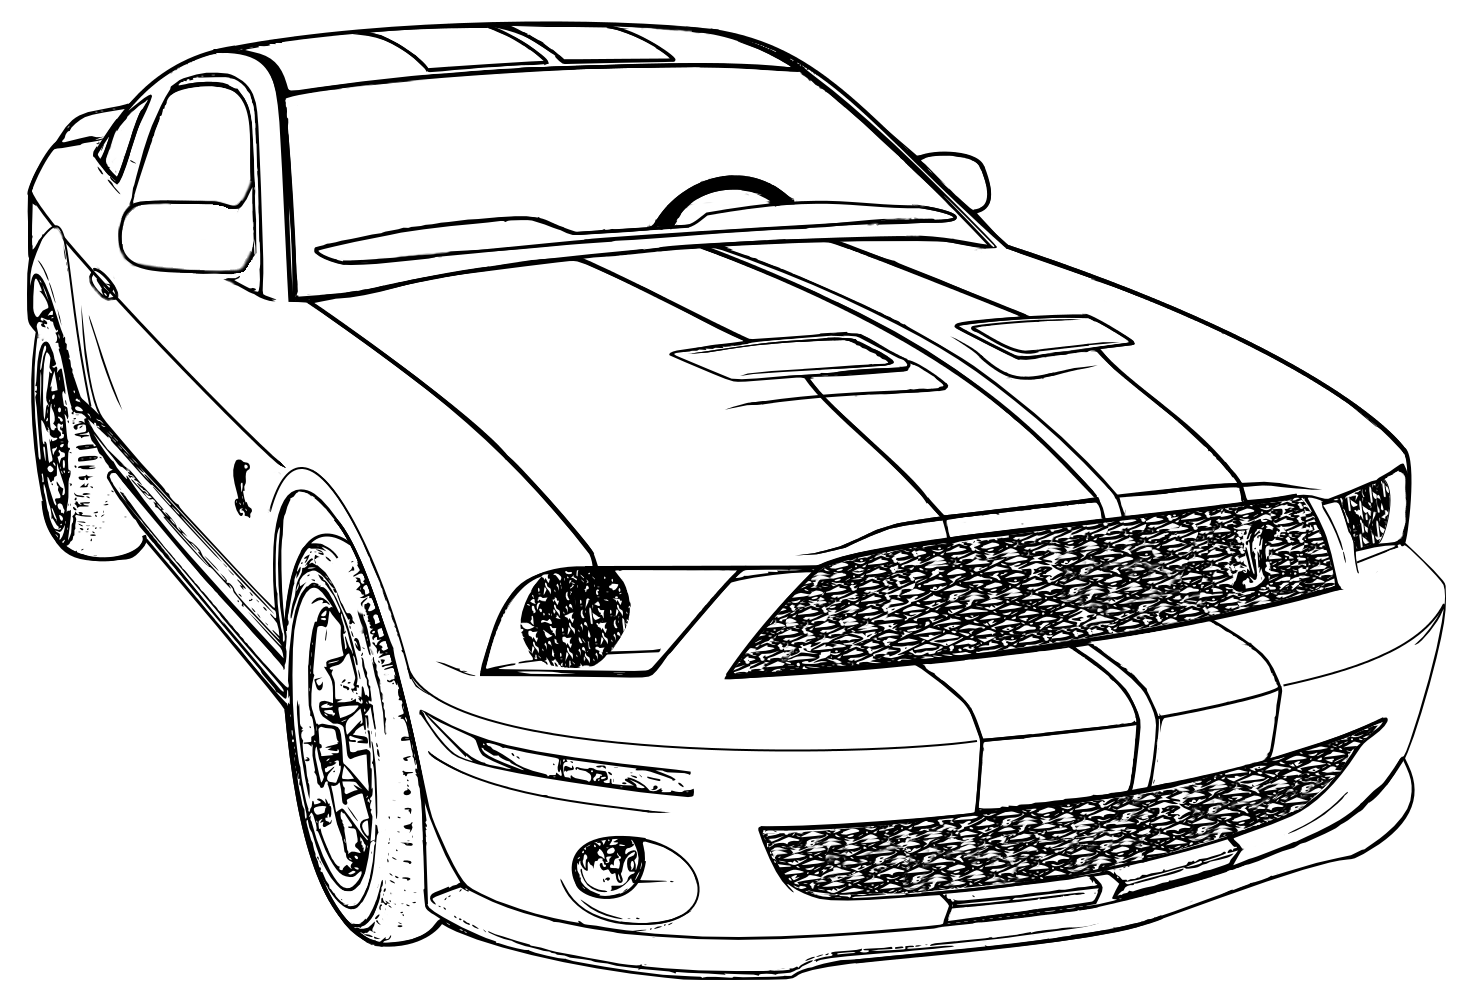 truck colouring in military coloring pages to download and print for free colouring in truck